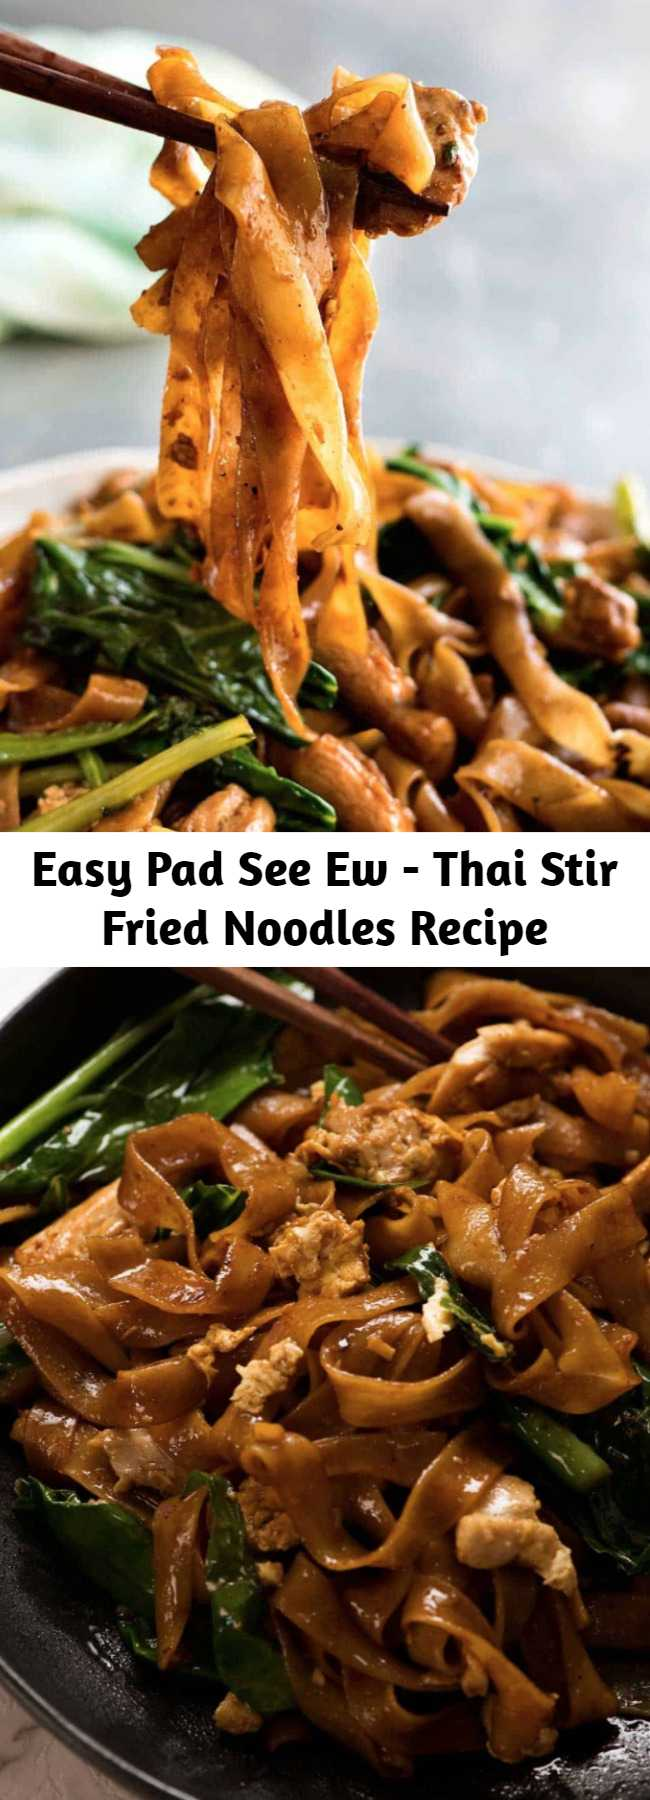 Easy Pad See Ew - Thai Stir Fried Noodles Recipe - Pad See Ew (which means Stir Fried Soy Sauce noodles) is one of the most popular Thai street foods. Traditionally made with Sen Yai which are wide, thin rice noodles which are not that easy to come by. So use dried rice noodles instead - I've eaten enough Pad See Ew at Thai restaurants to assure you that there is no compromise on flavour! On the table in 15 minutes. #Noodles #Chicken #Broccoli #Fast